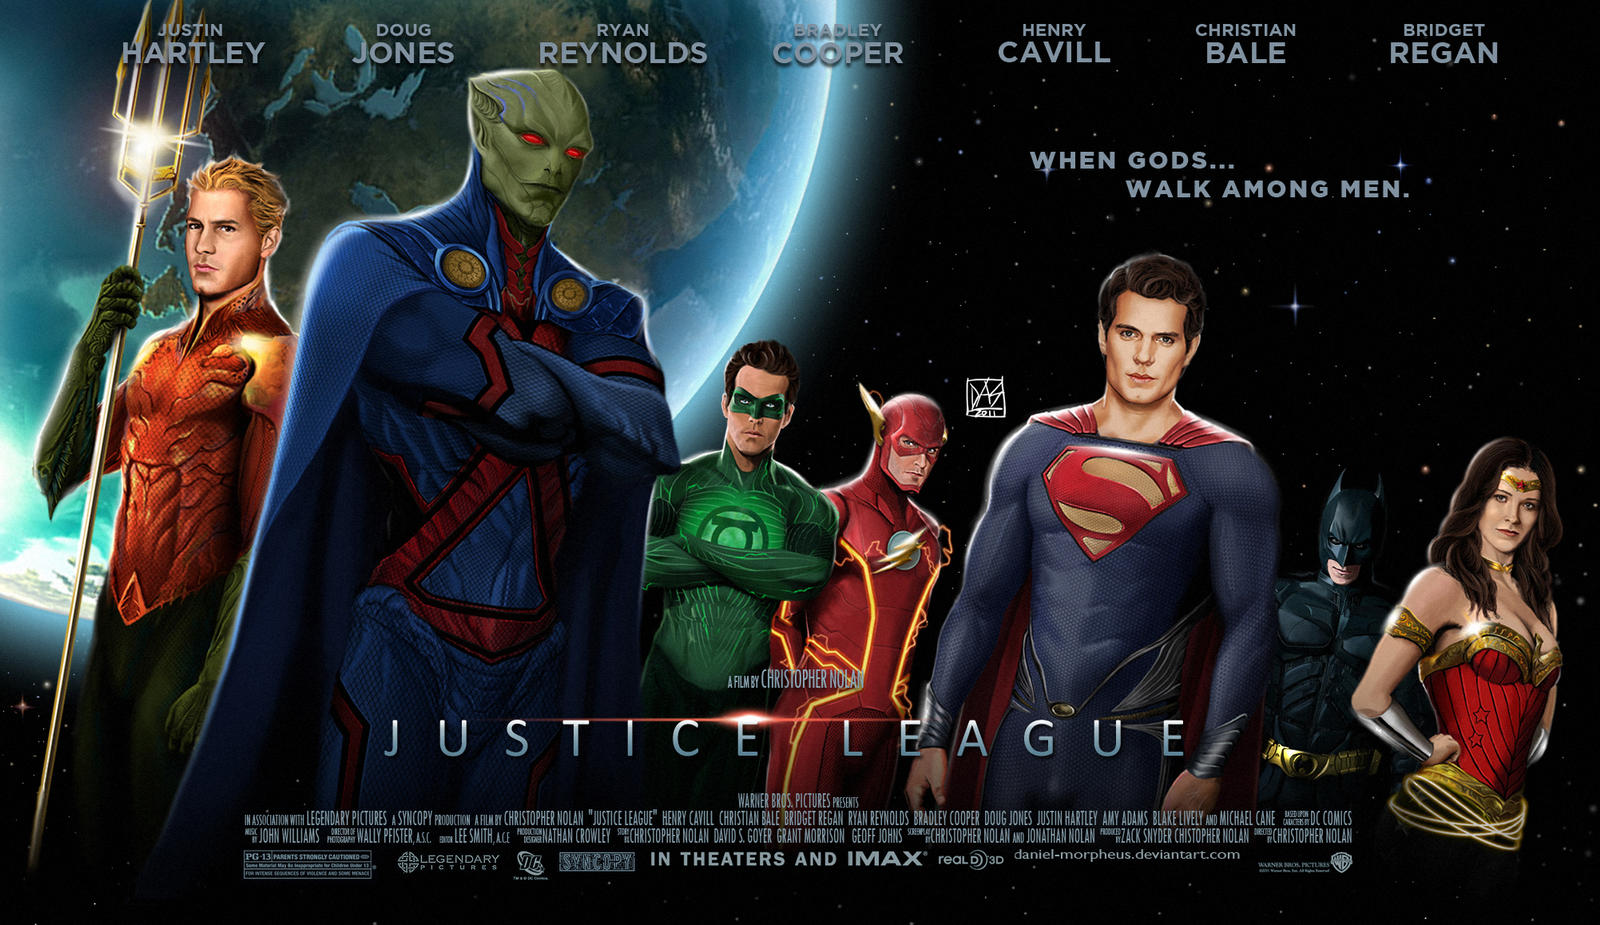 justice_league_movie_poster_by_daniel_morpheus-d4ga8dj.jpg